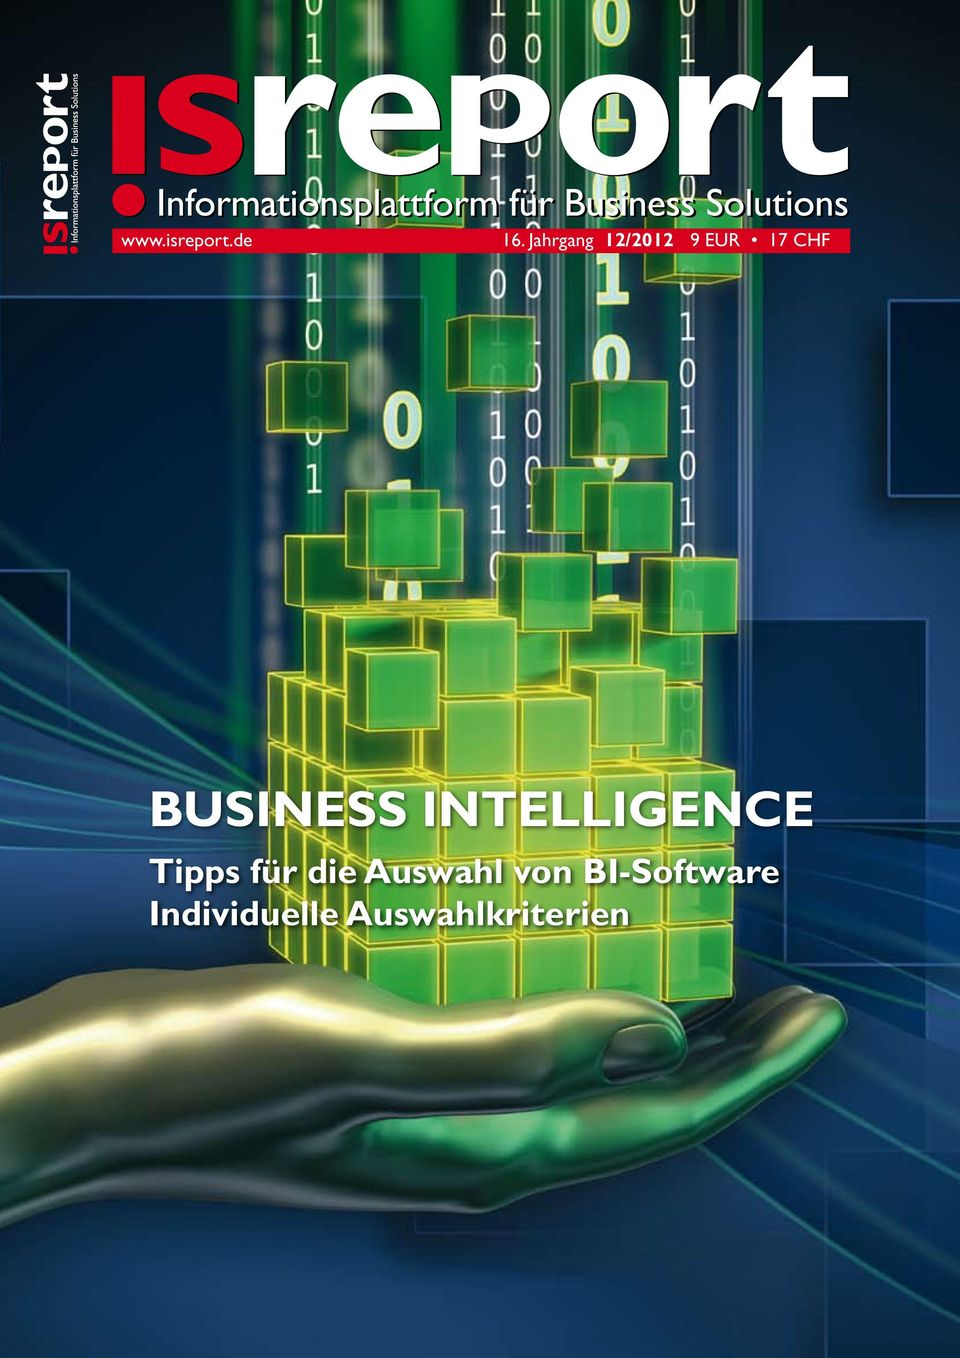 Jahrgang 12/2012 9 EUR 17 CHF BUSINESS INTELLIGENCE Tipps